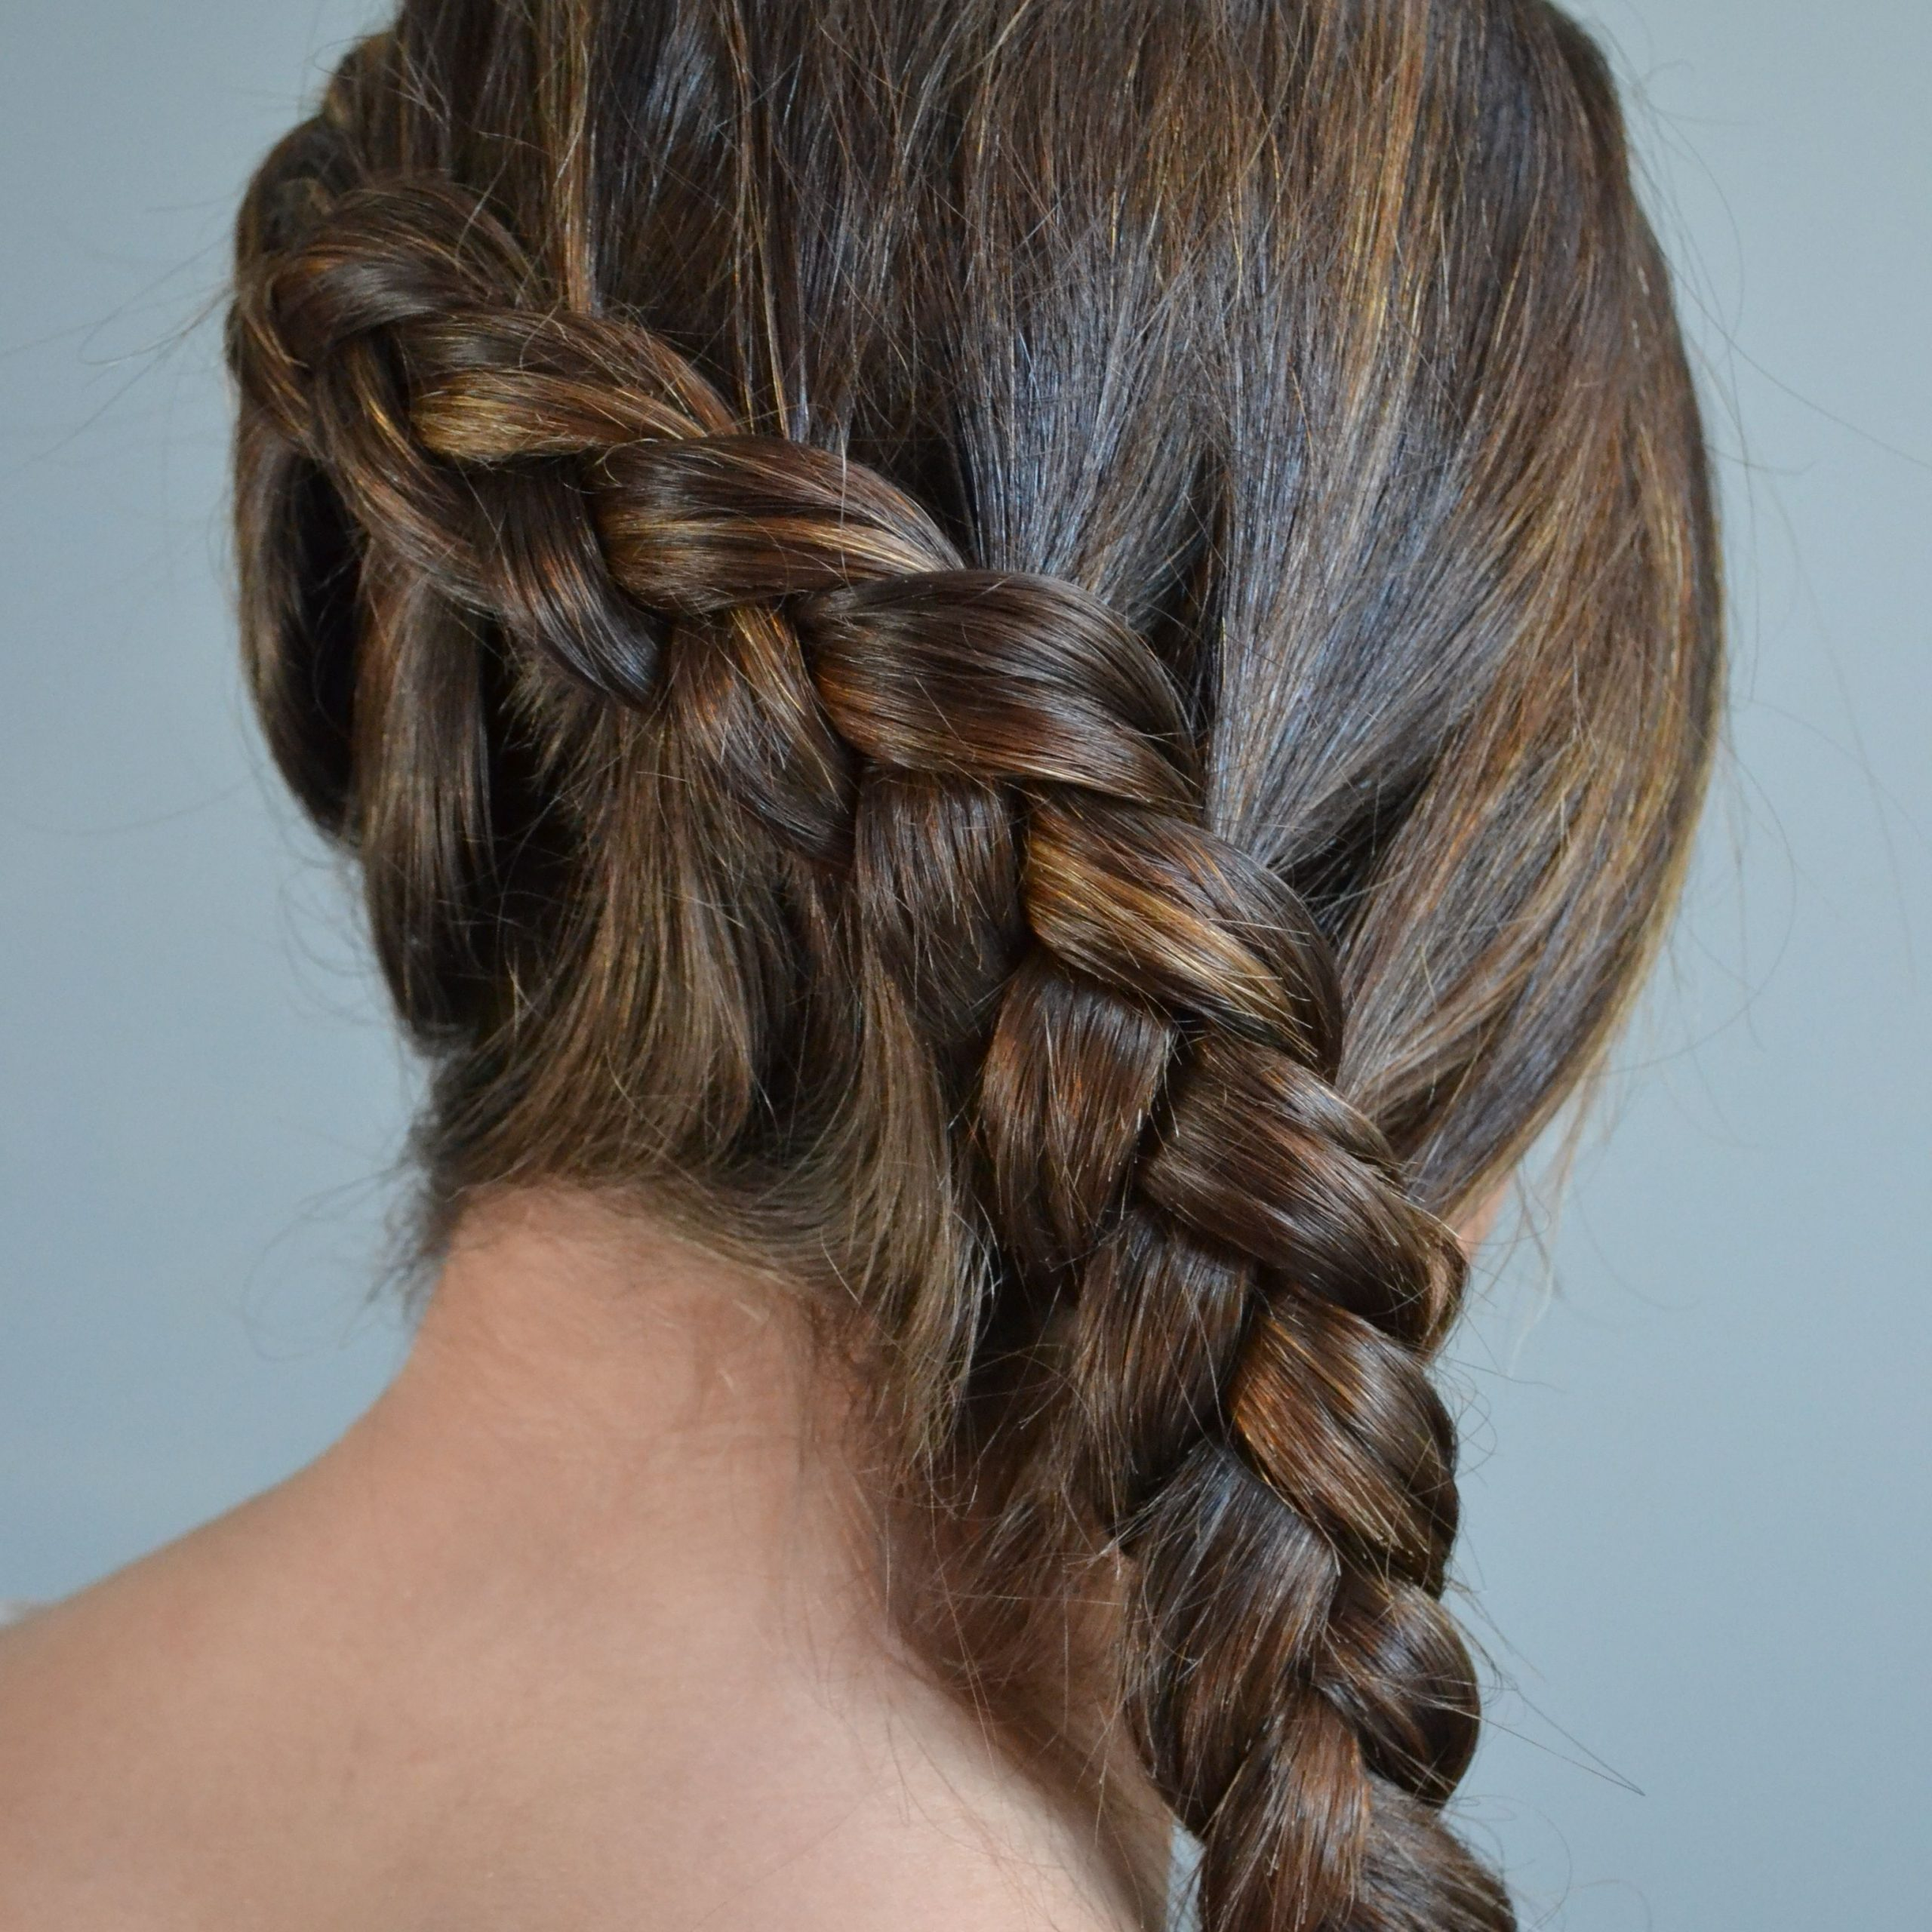 Best And Newest Five Dutch Braid Ponytail Hairstyles With Side Dutch Braid (View 5 of 20)